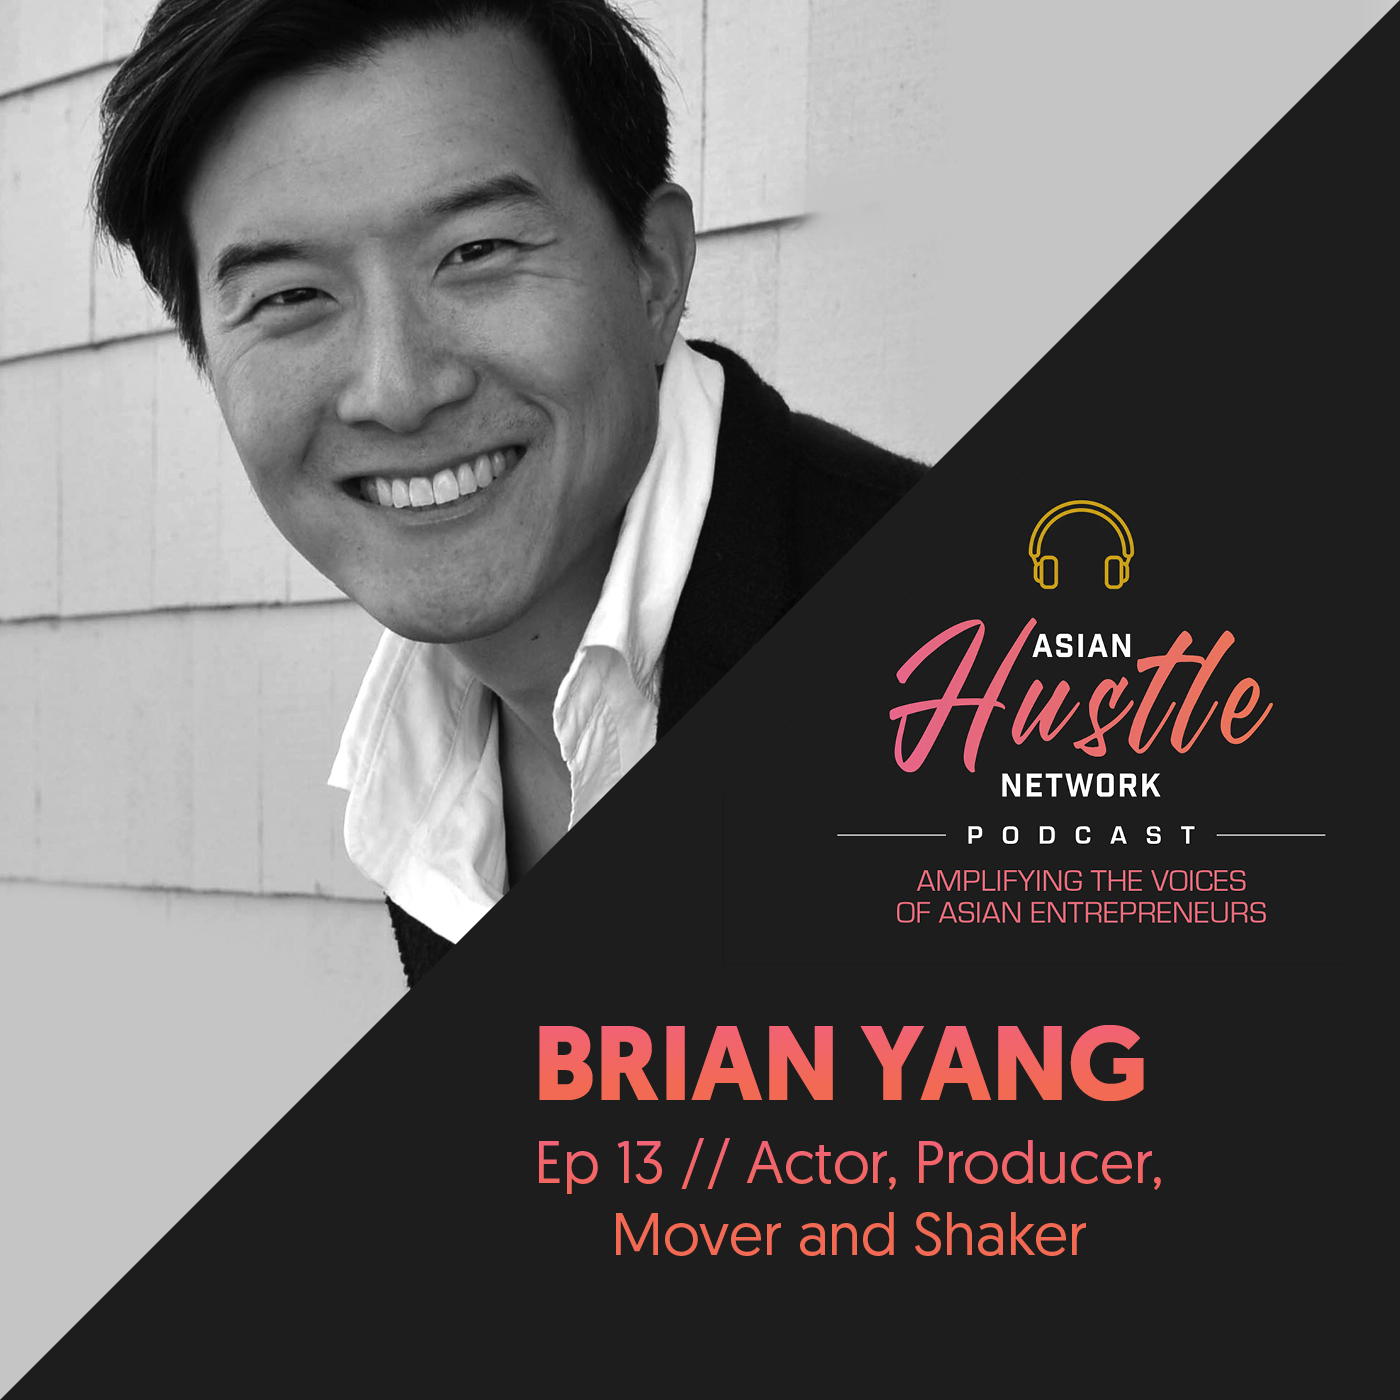 www.asianhustlenetwork.com: Brian Yang // Ep 13 // Actor, Producer, Mover and Shaker